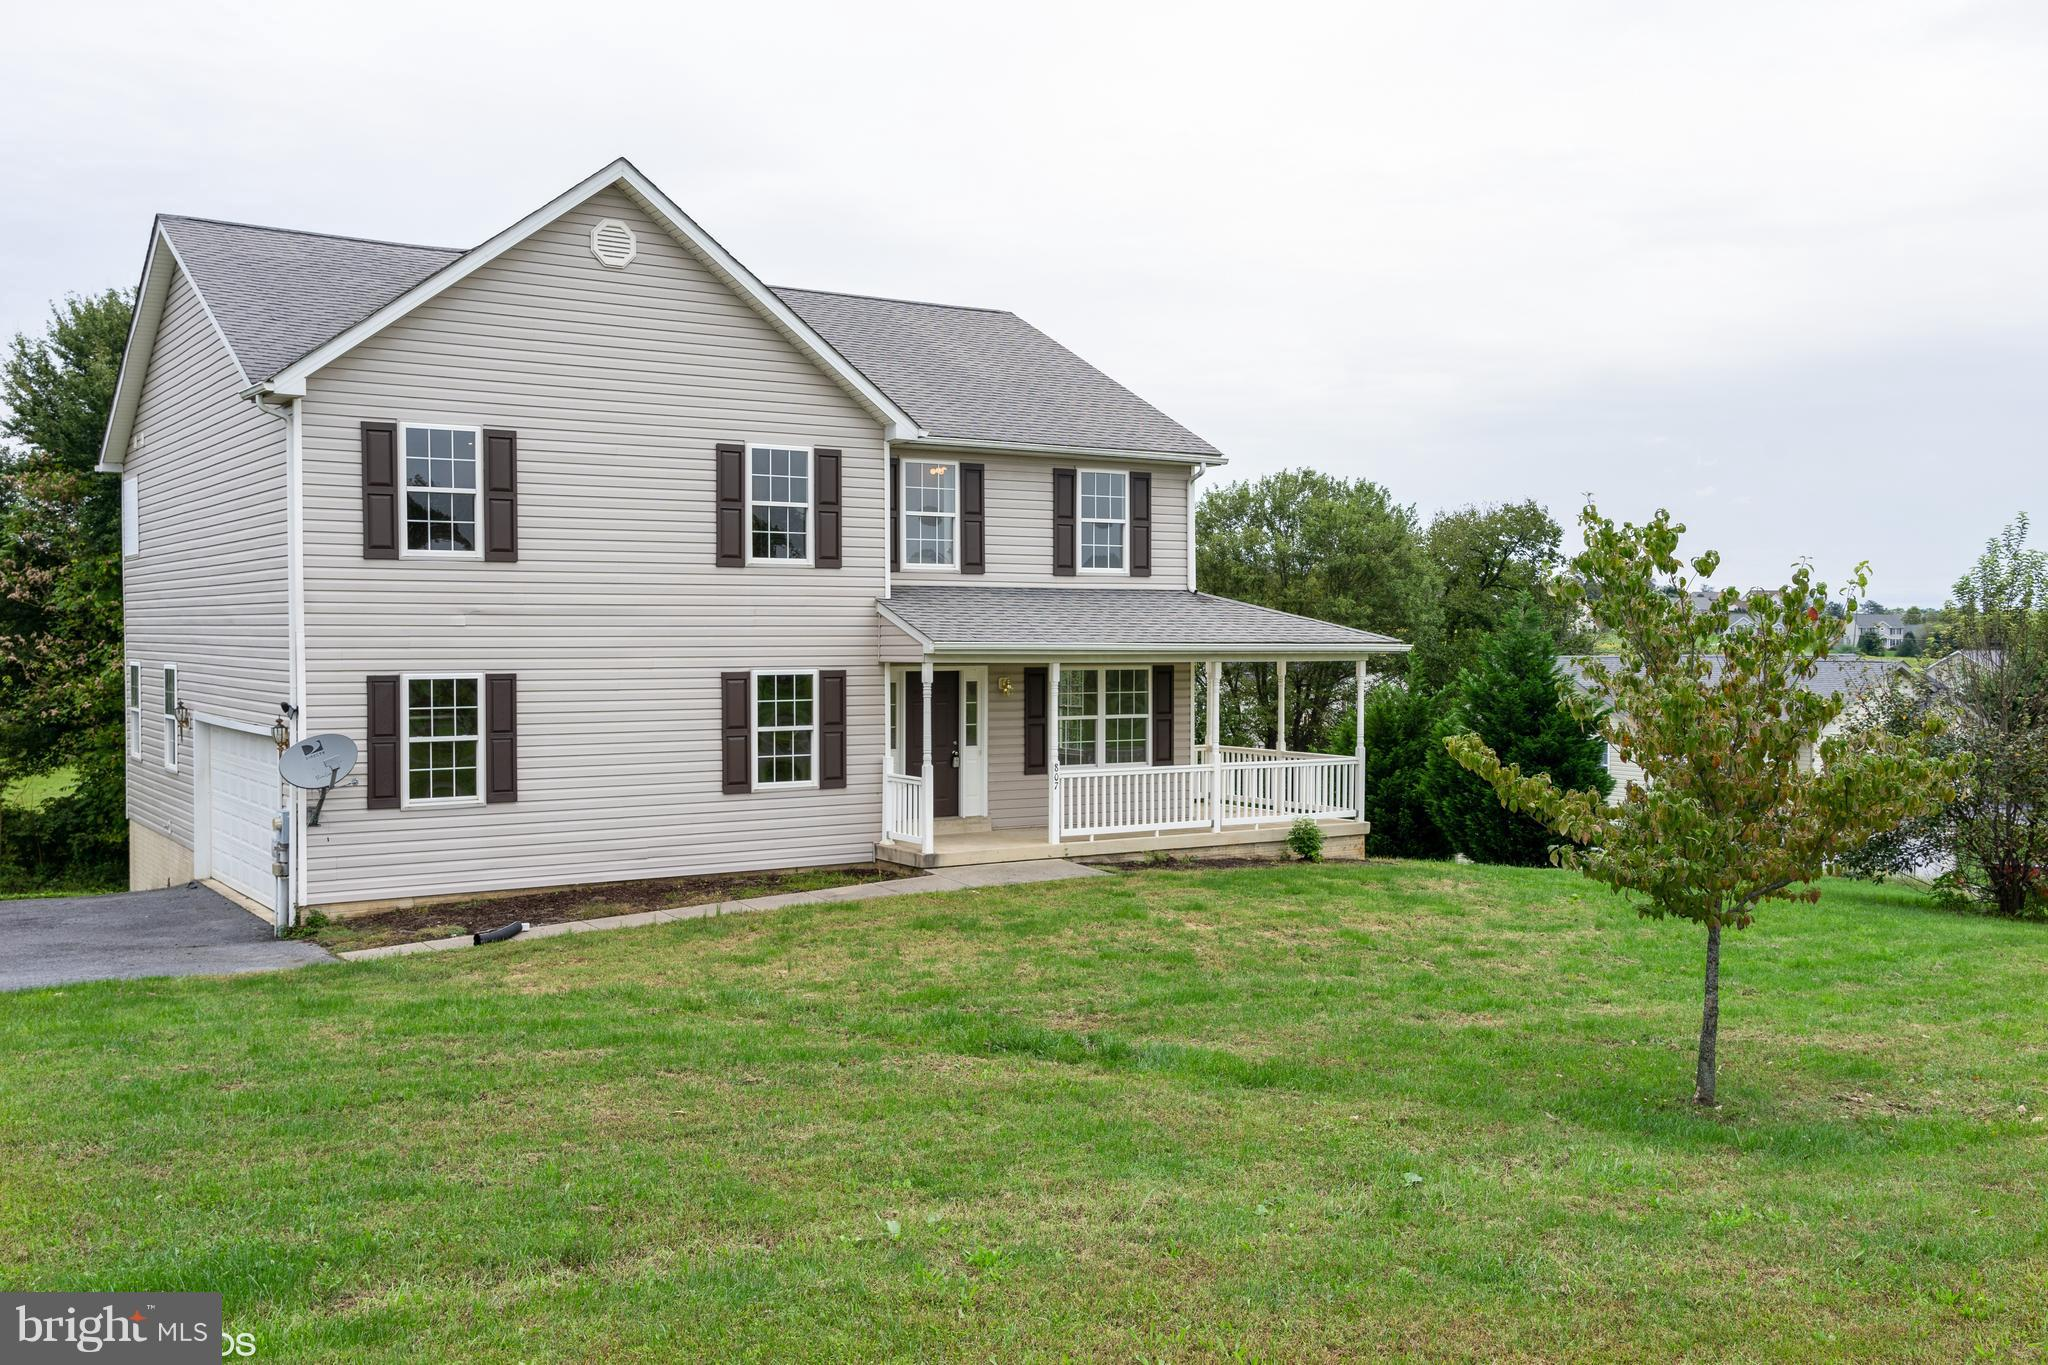 Wonderful 4BR 3.5BA colonial home on aprox. .74 acres with fair distance between neighbors, mountain views and some wooded areas. Interior of home sports a open concept kitchen with a open view to the living room for entertaining.  Fresh paint, new floors and appliances.